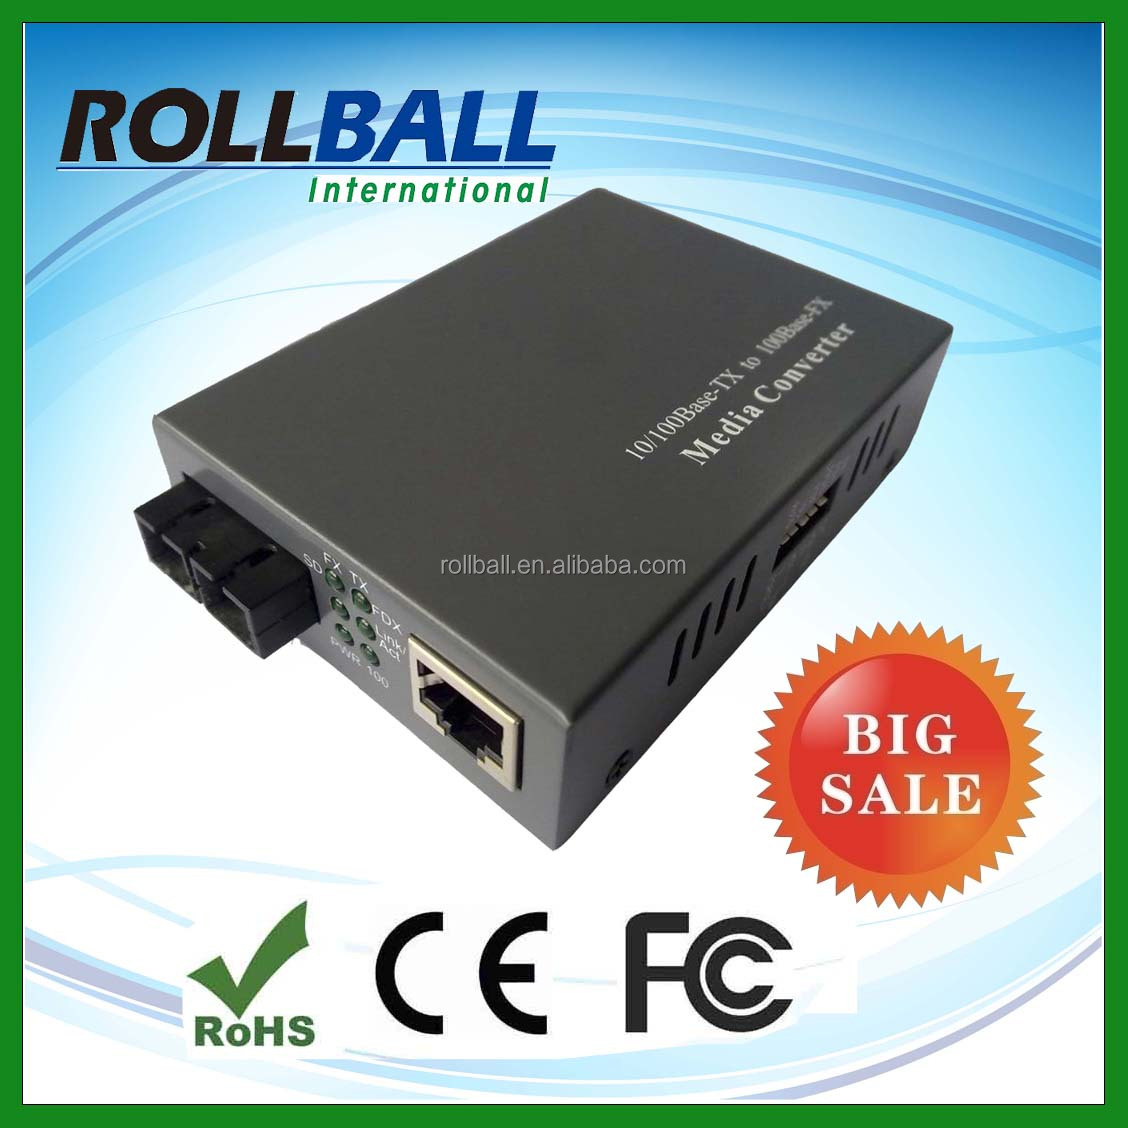 High performance 10/100m singlemode dual fiber 20km optical media converters